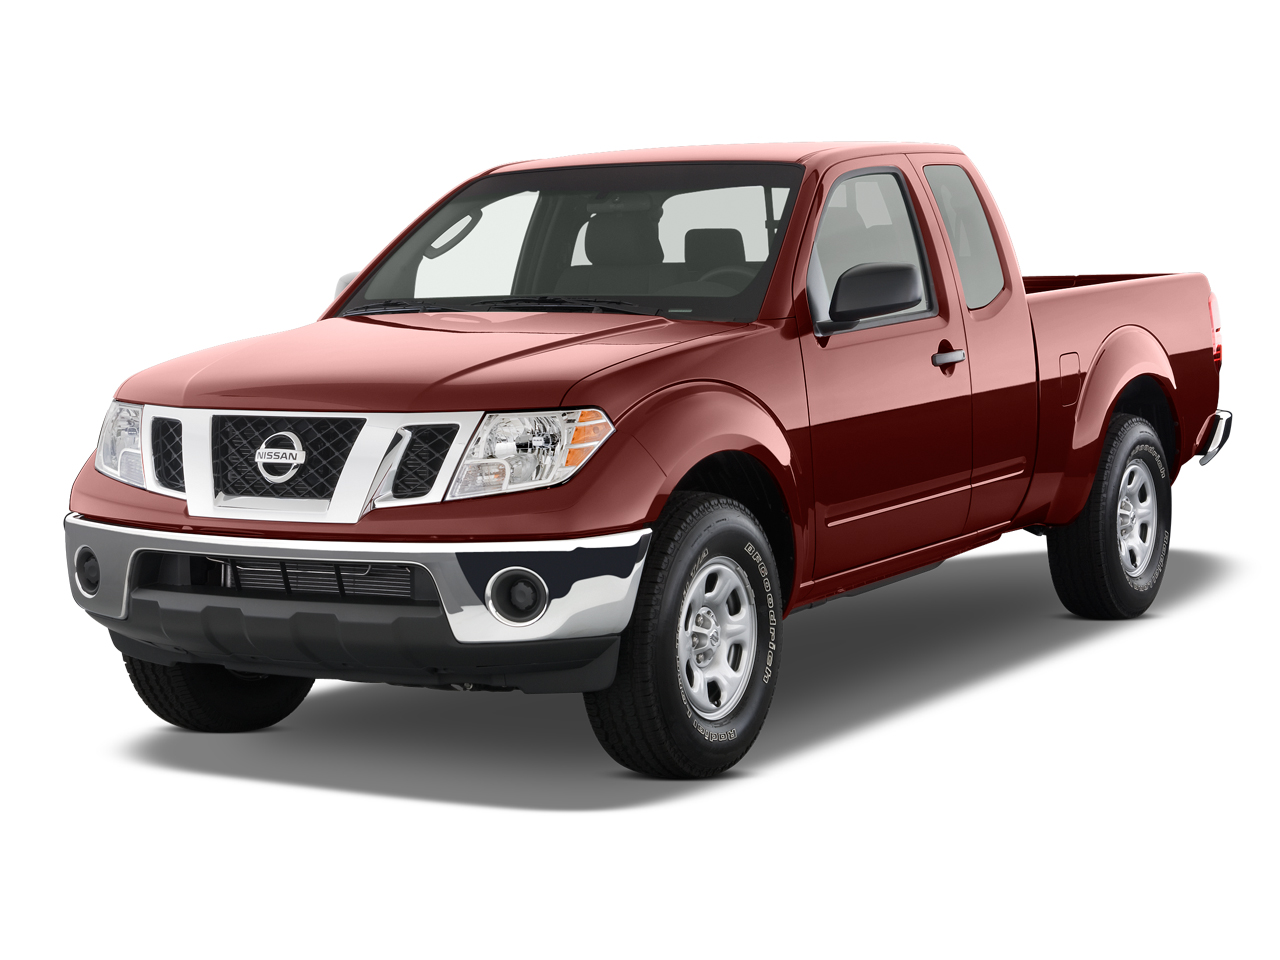 Nissan Frontier Truck Bed Size